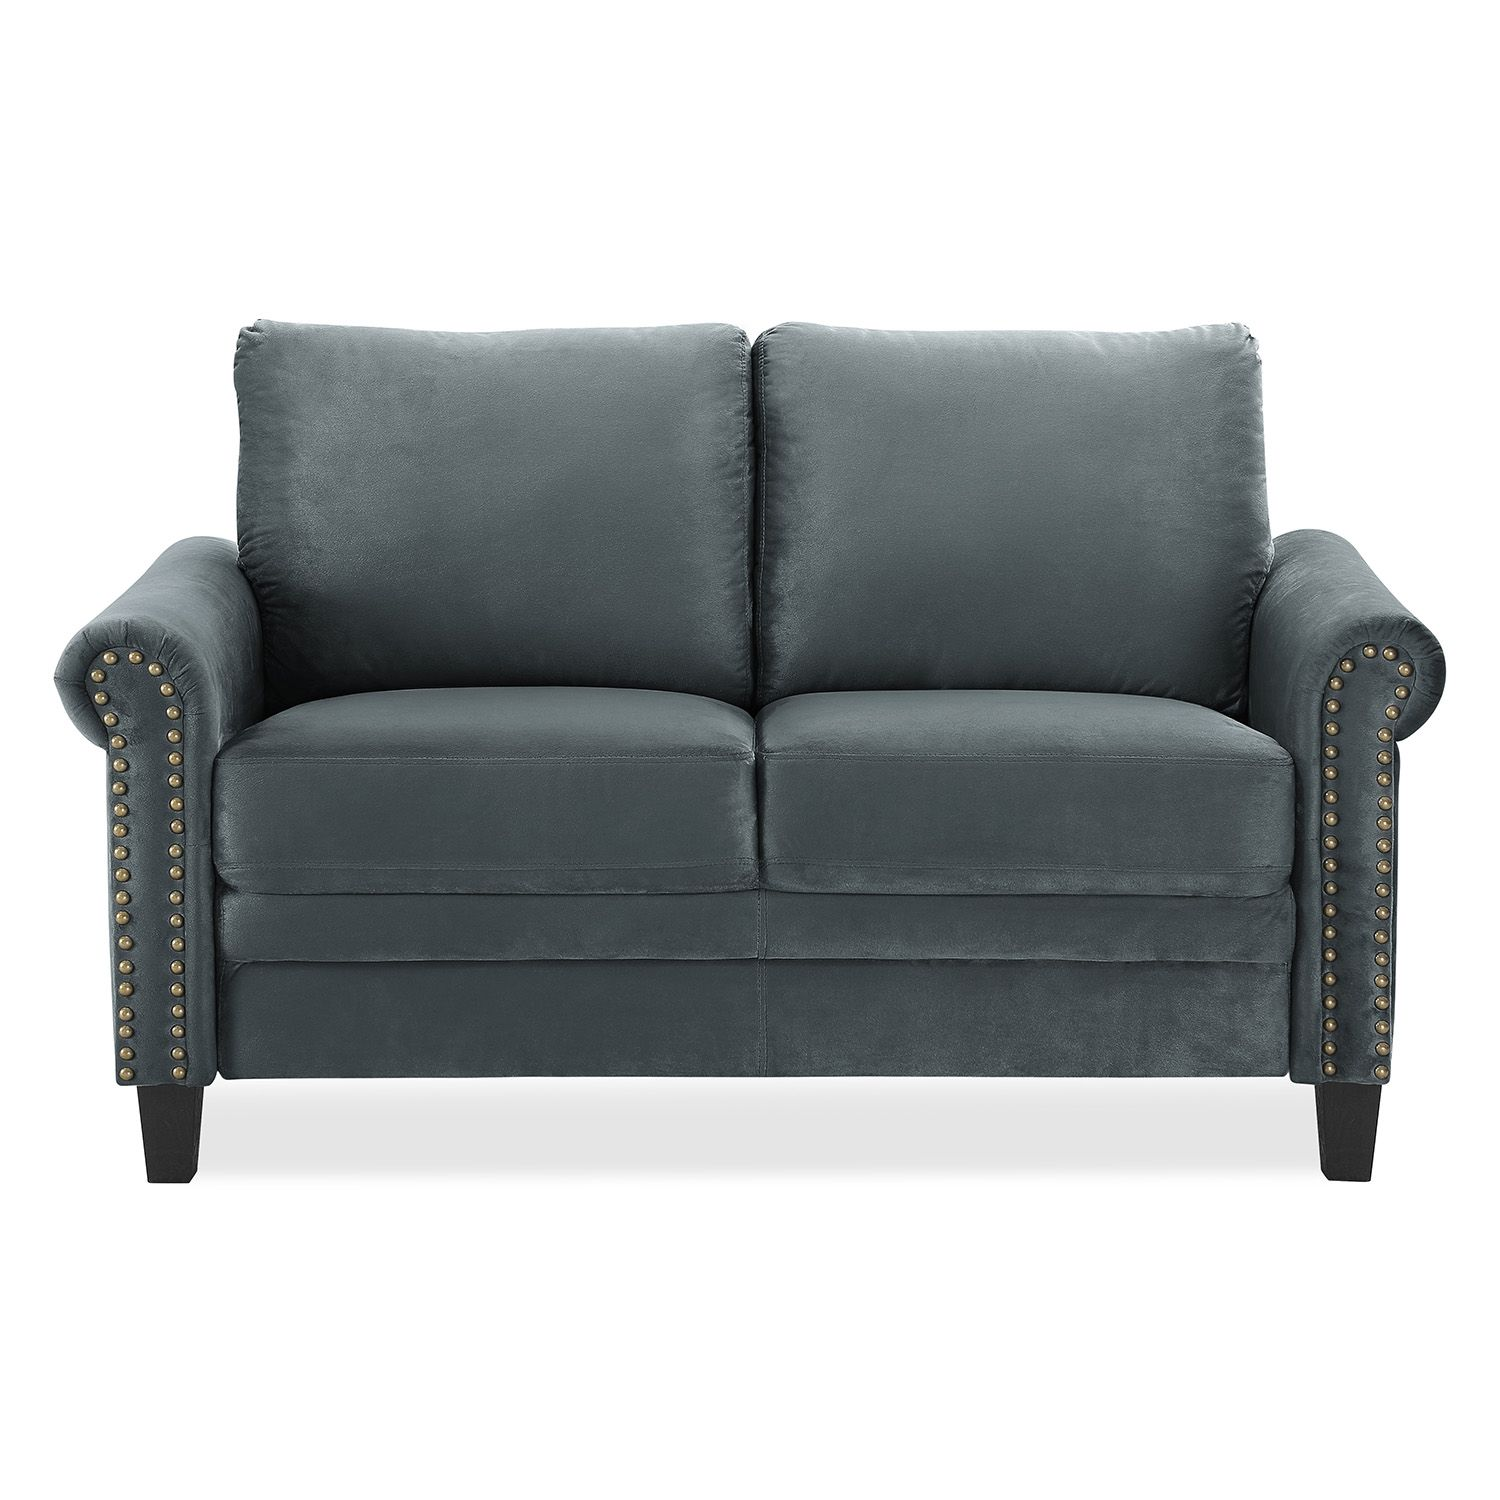 Lifestyle Solutions Calgary Loveseat. Sale